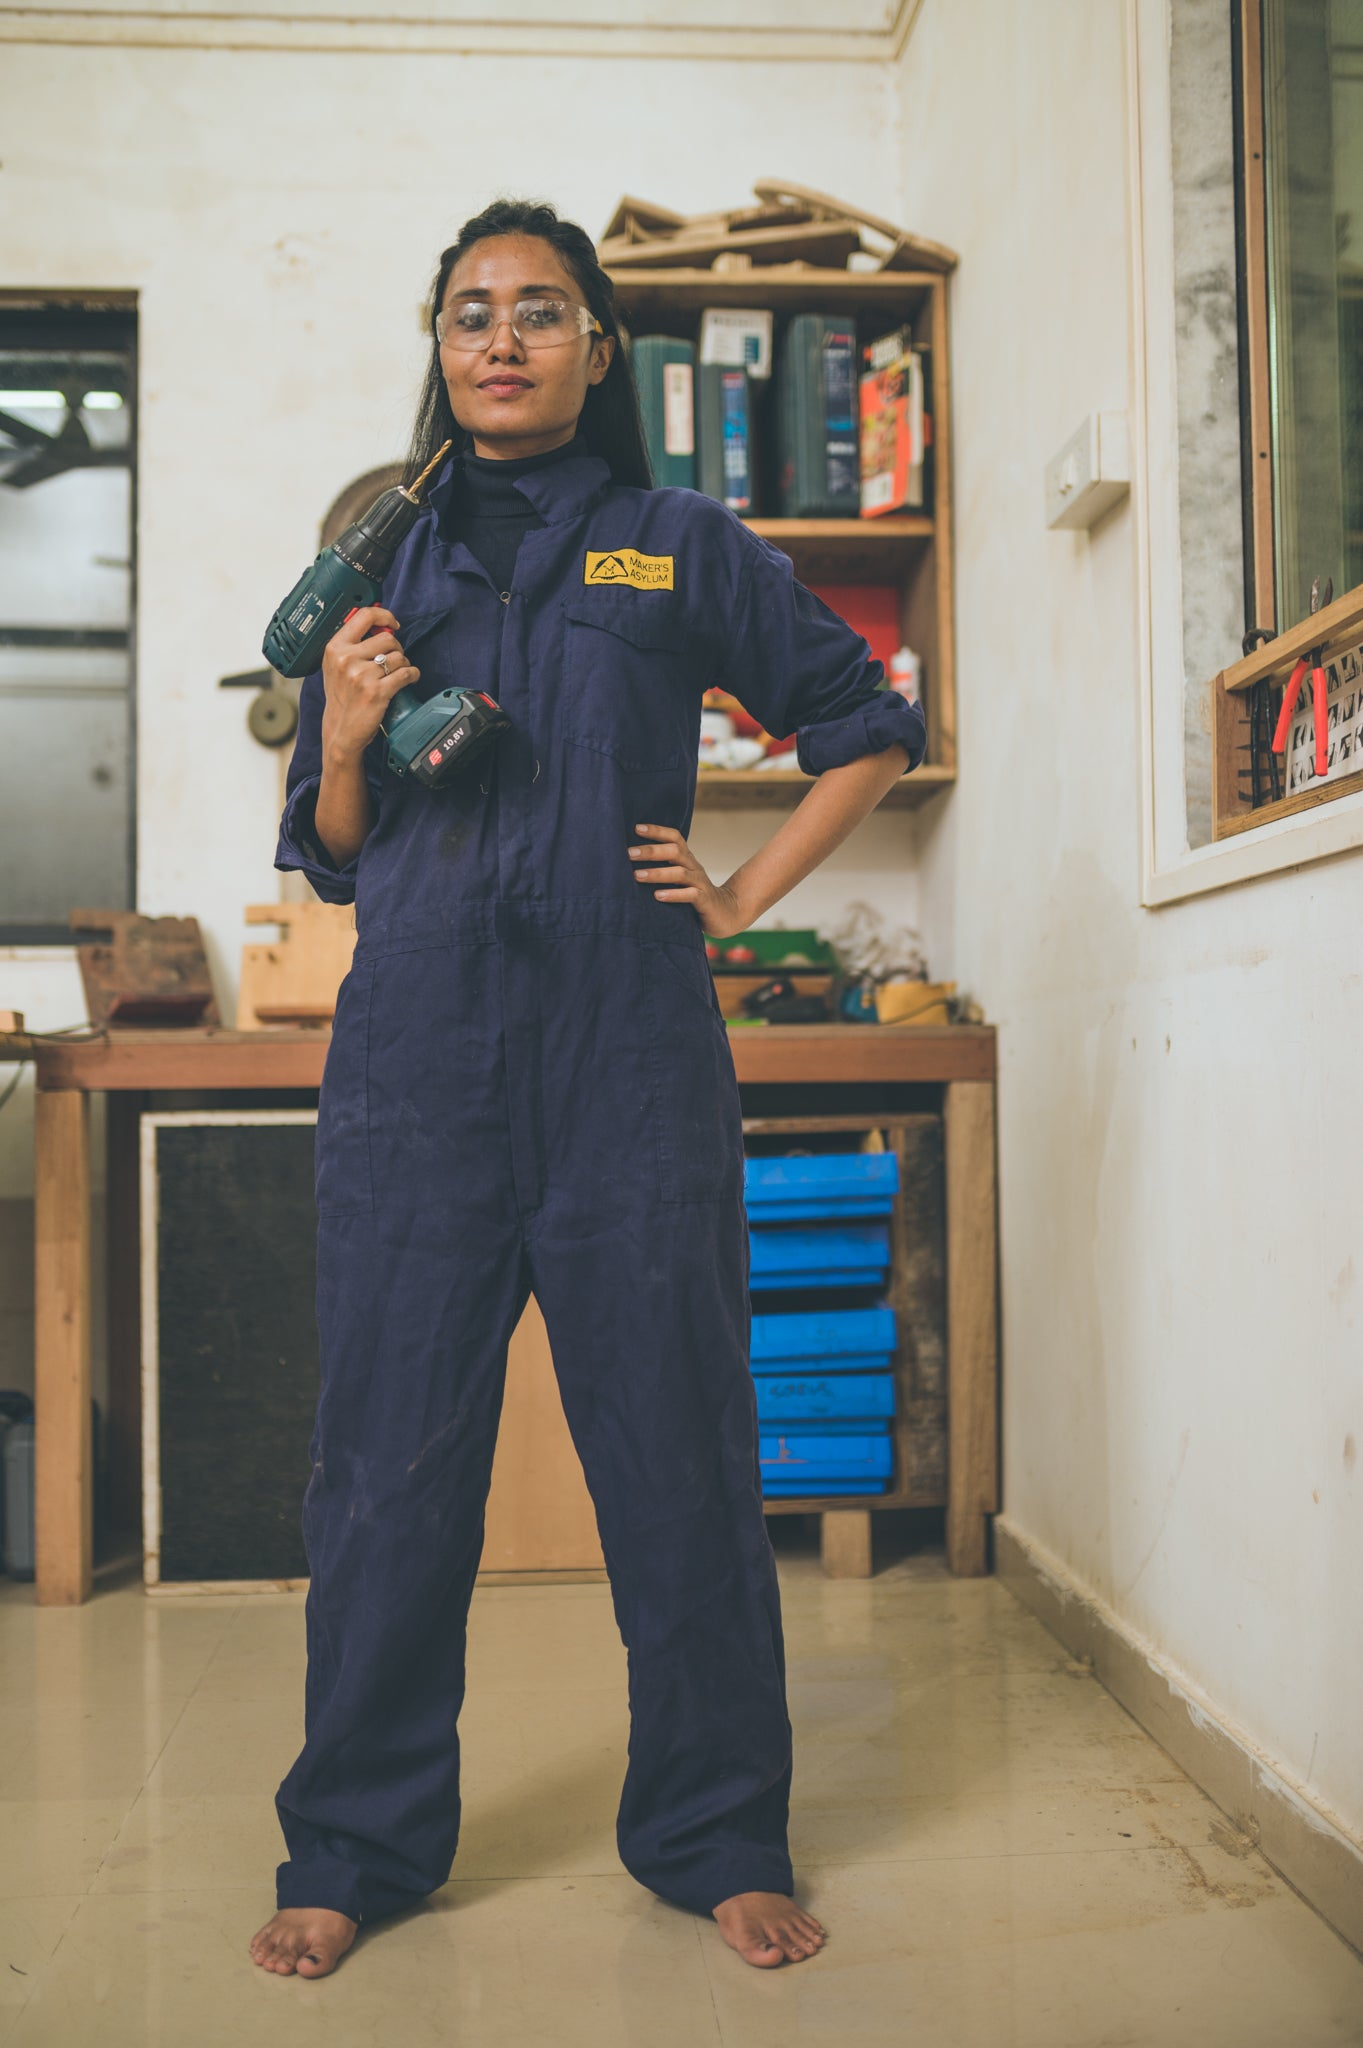 Boiler suit / Workshop coverall - Unisex - Maker's Asylum Shop